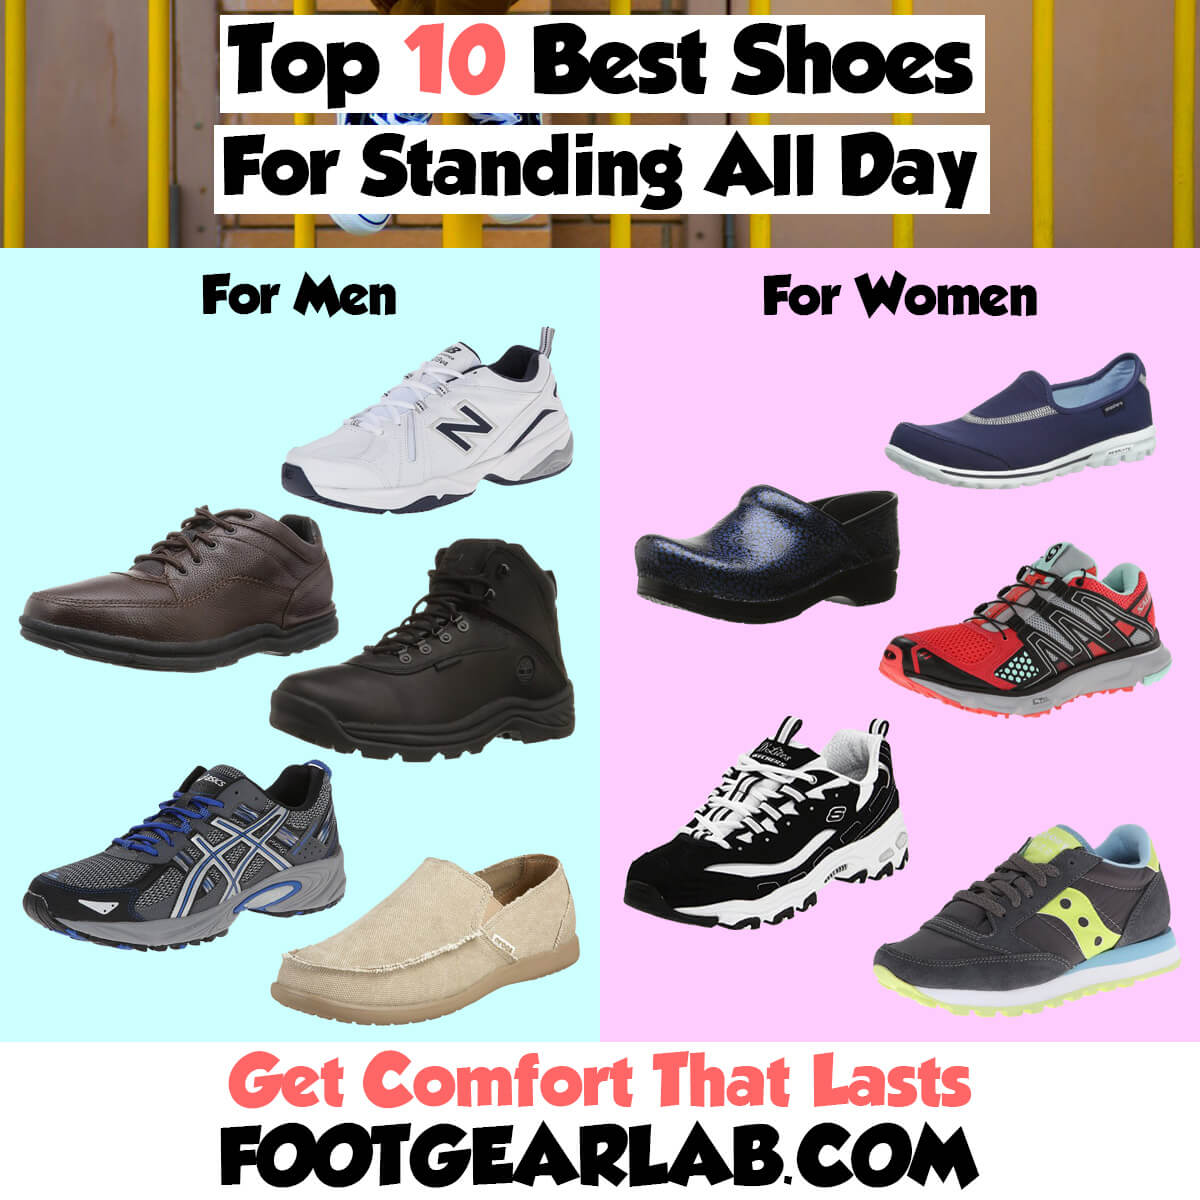 10 Best Shoes For Standing All Day At Work In 2018